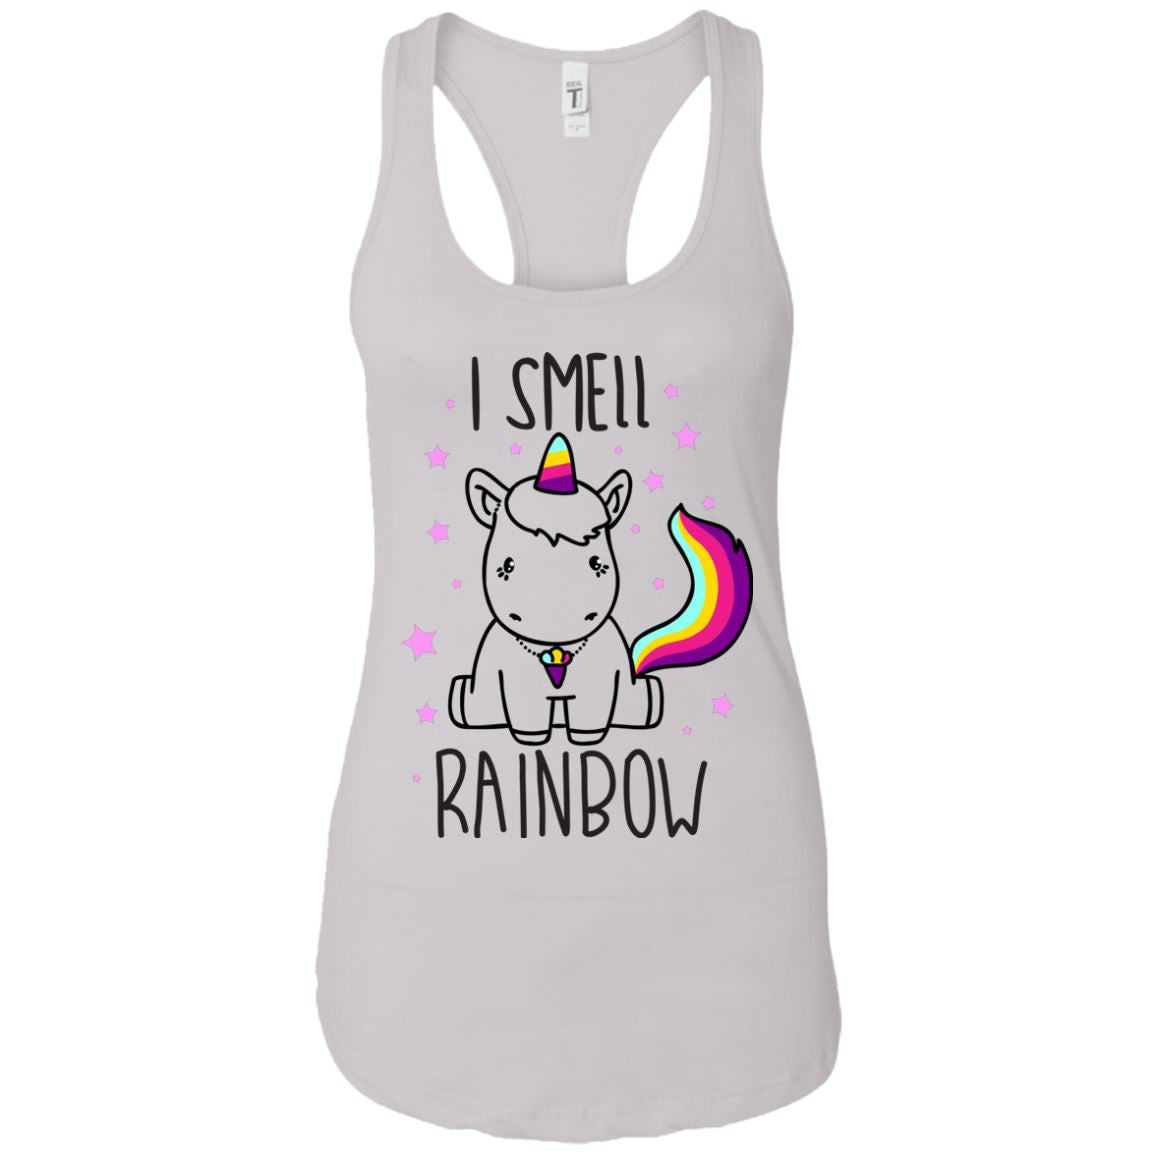 I Smell Rainbow Women's Racerback Tank Apparel White X-Small